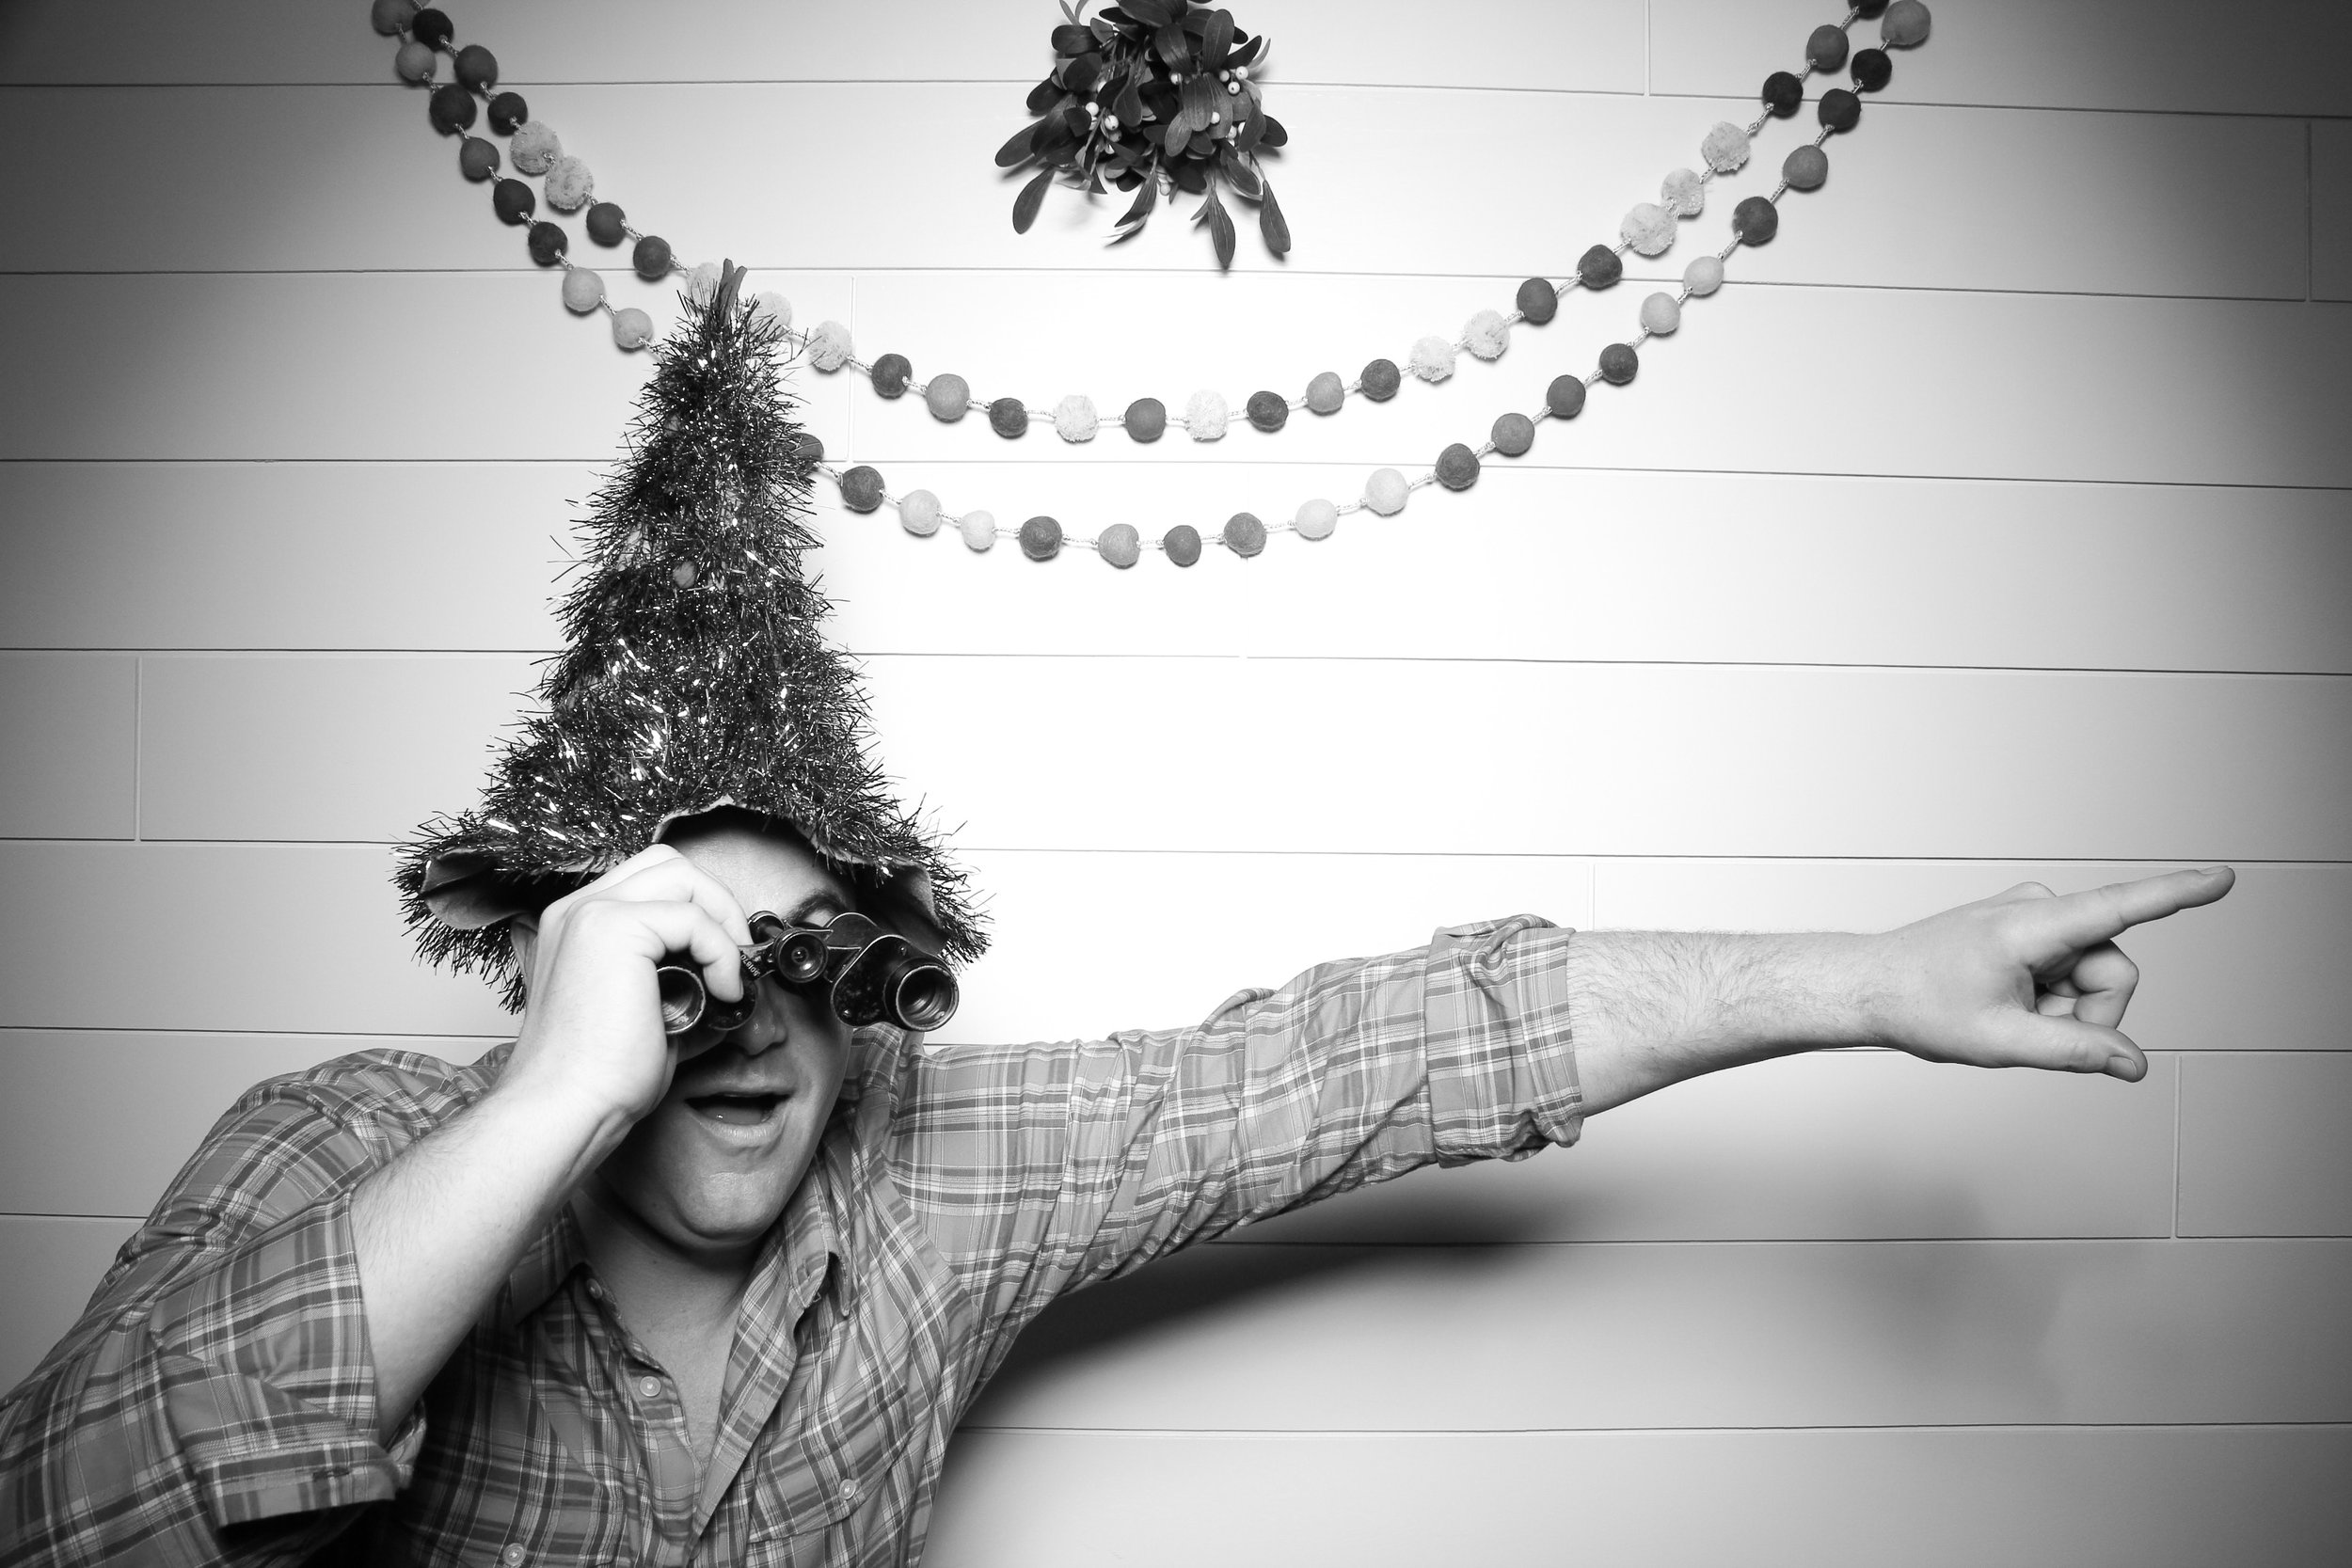 Chicago_Vintage_Photobooth_Christmas_Holiday_Party_02.jpg